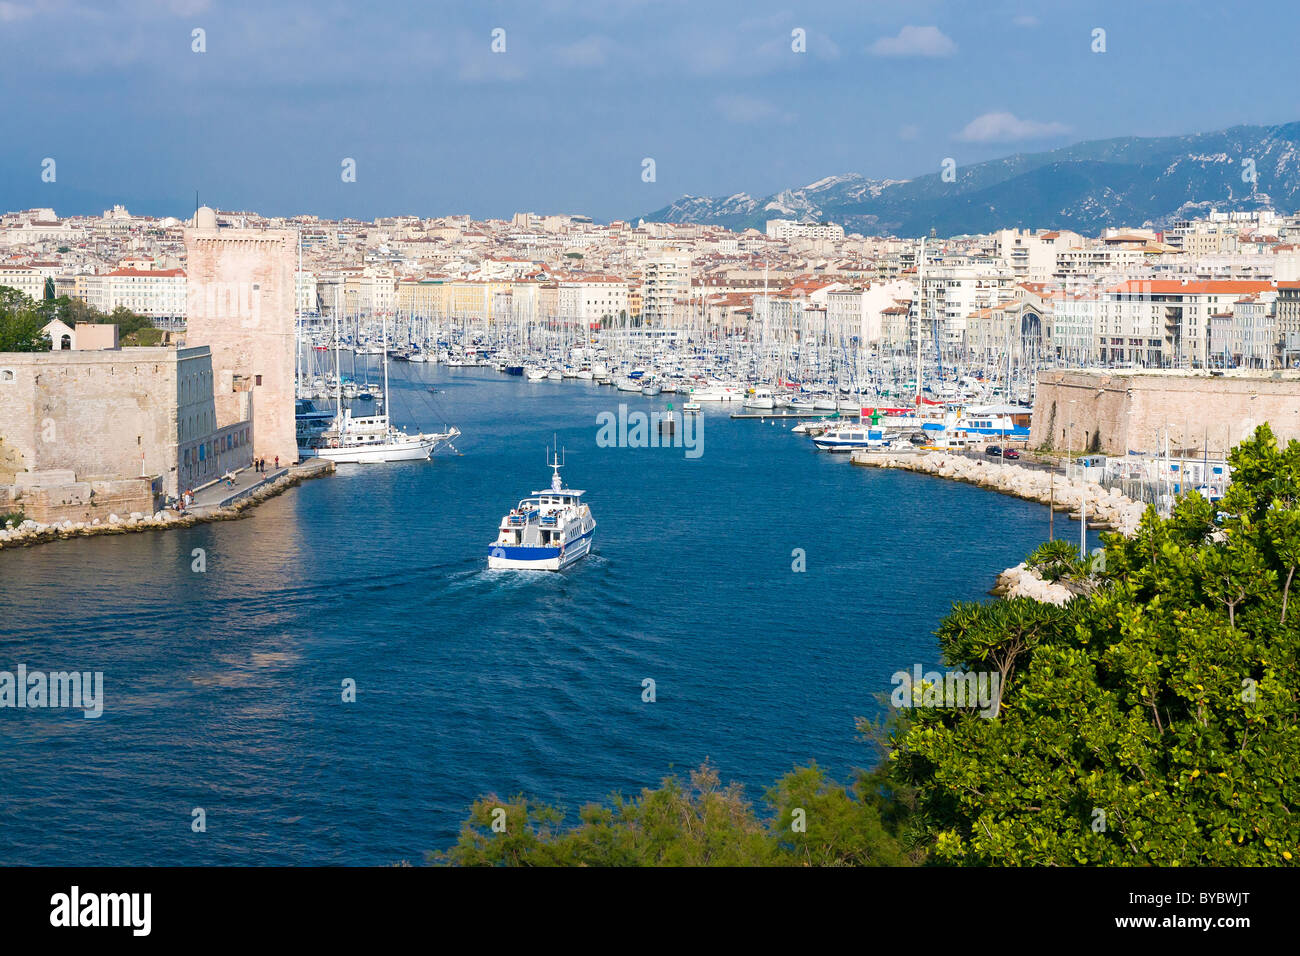 Panoramic view of Old Port of Marseille, France - Stock Image